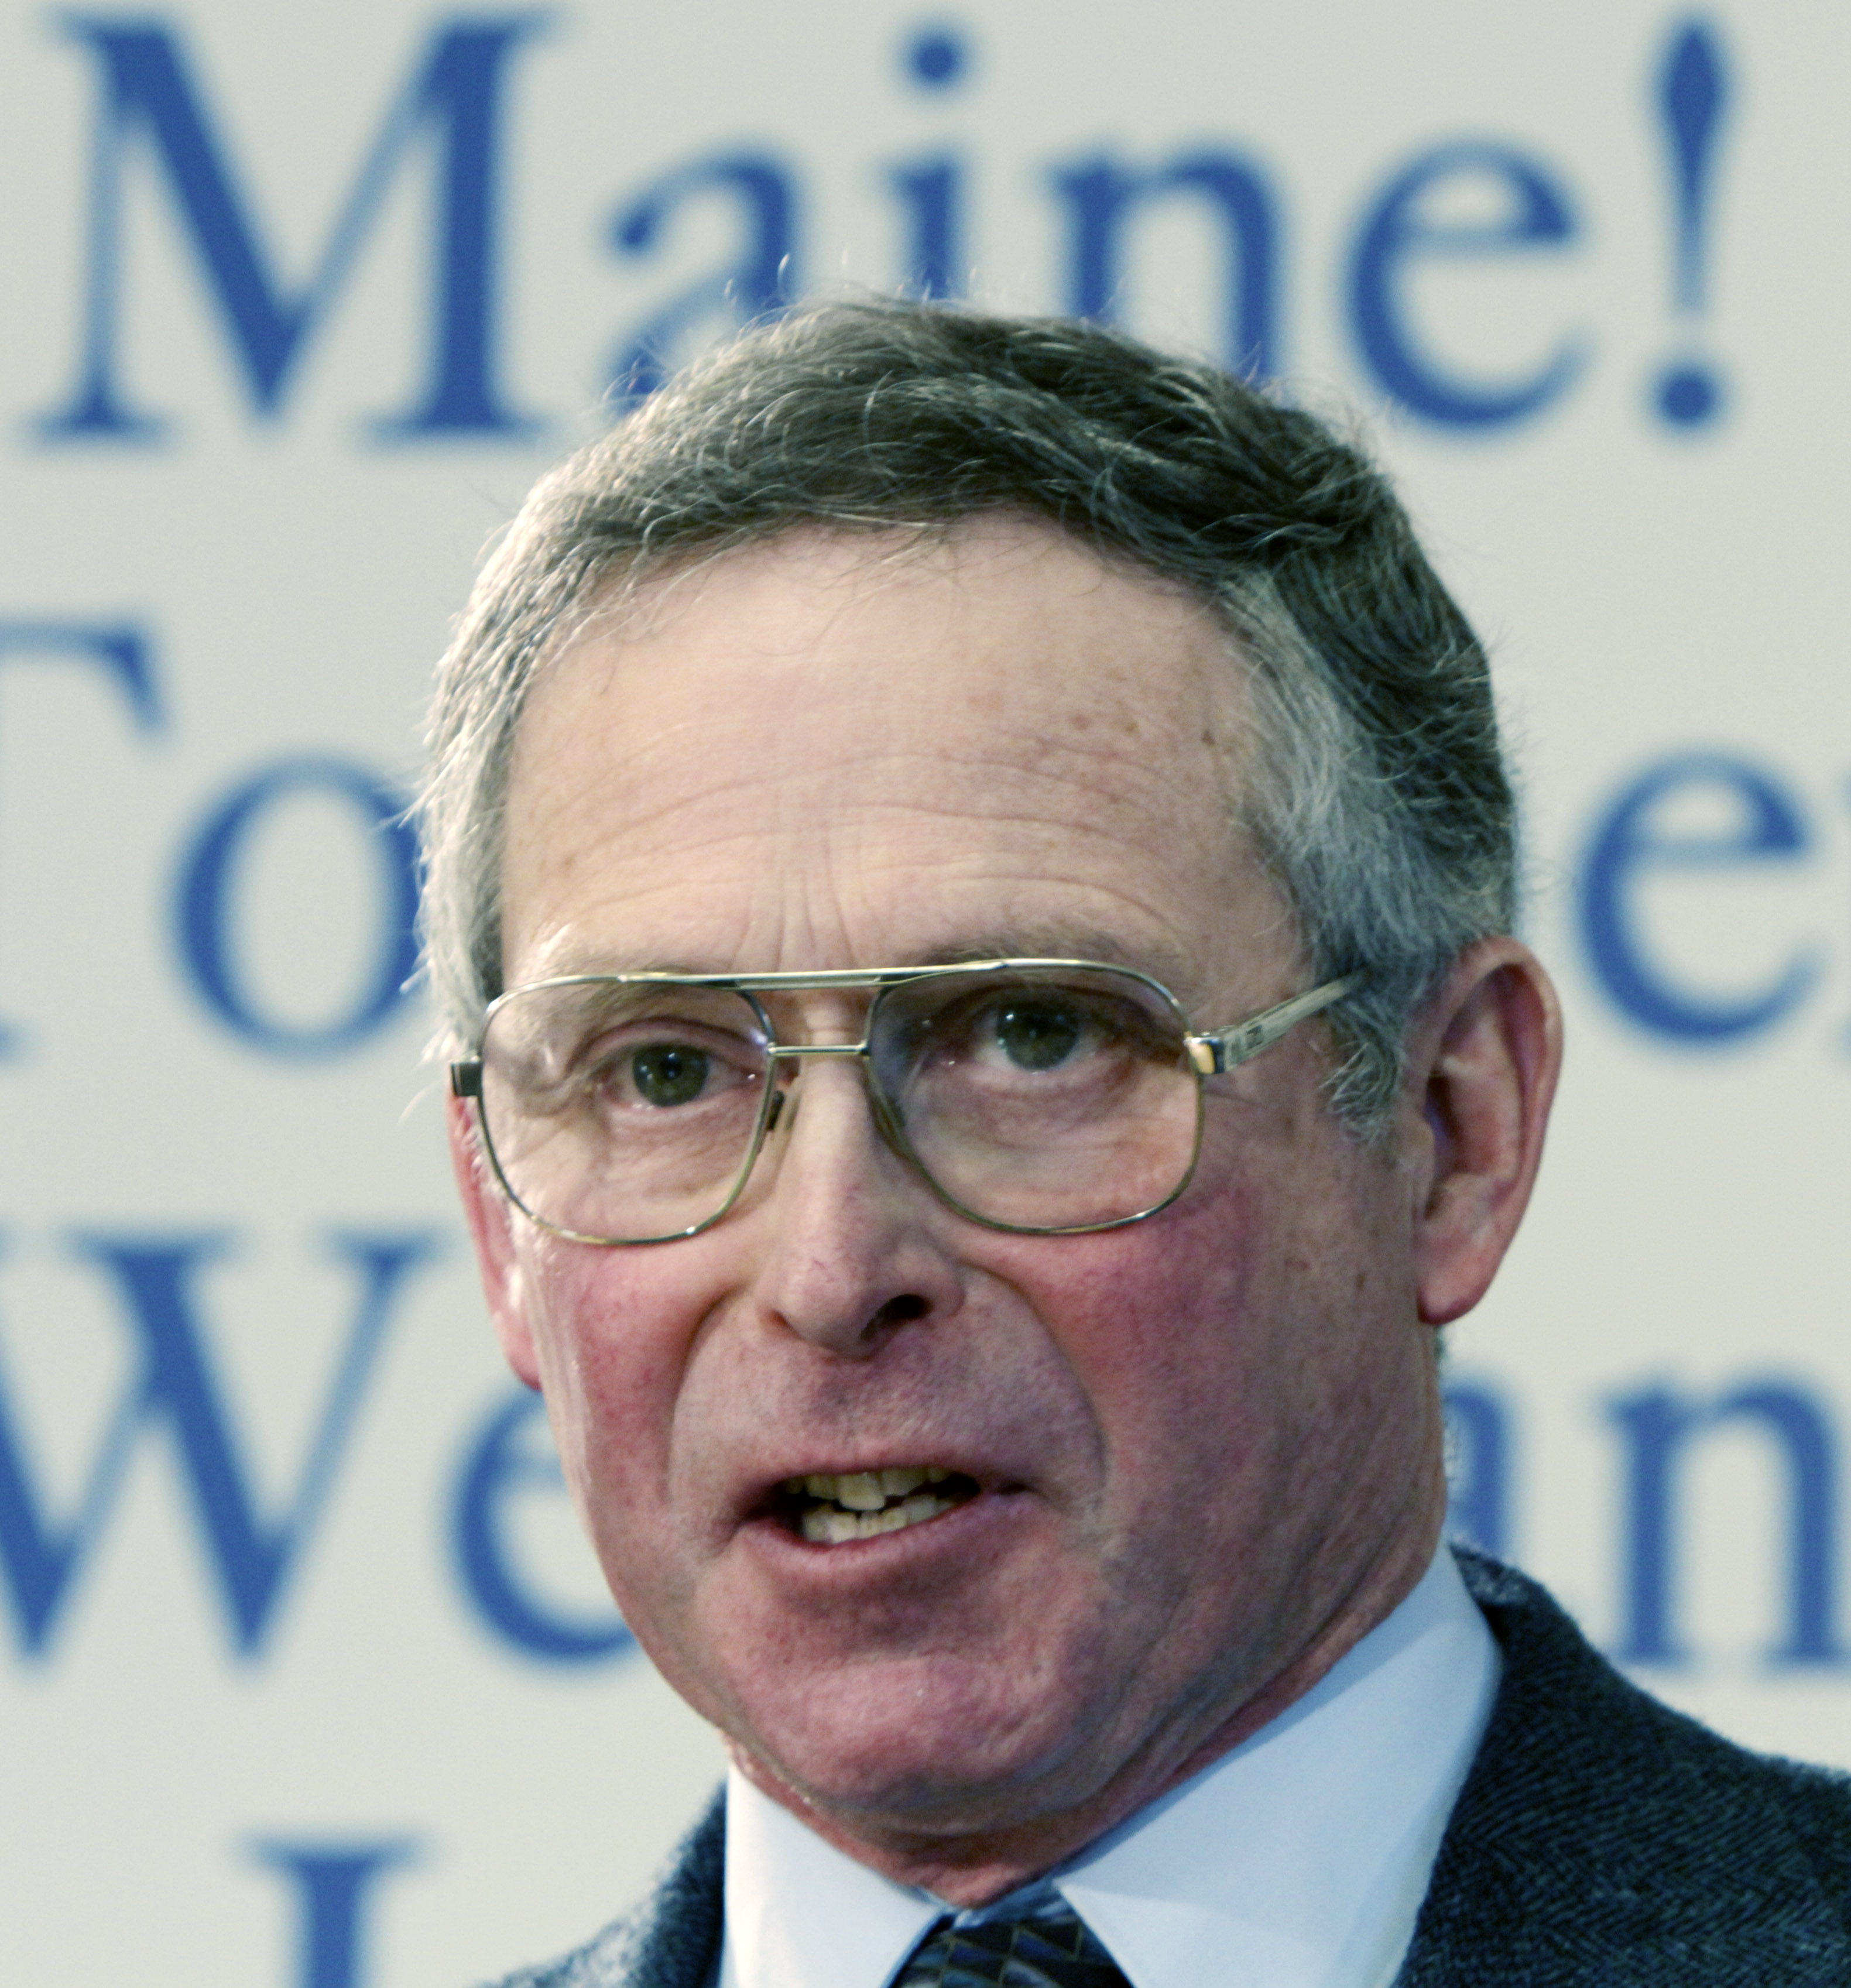 Walter Whitcomb answers questions after being named commissioner of the state Department of Agriculture by Maine Gov. Paul LePage at the State House in Augusta, Maine, on Wednesday, Jan. 19, 2011.